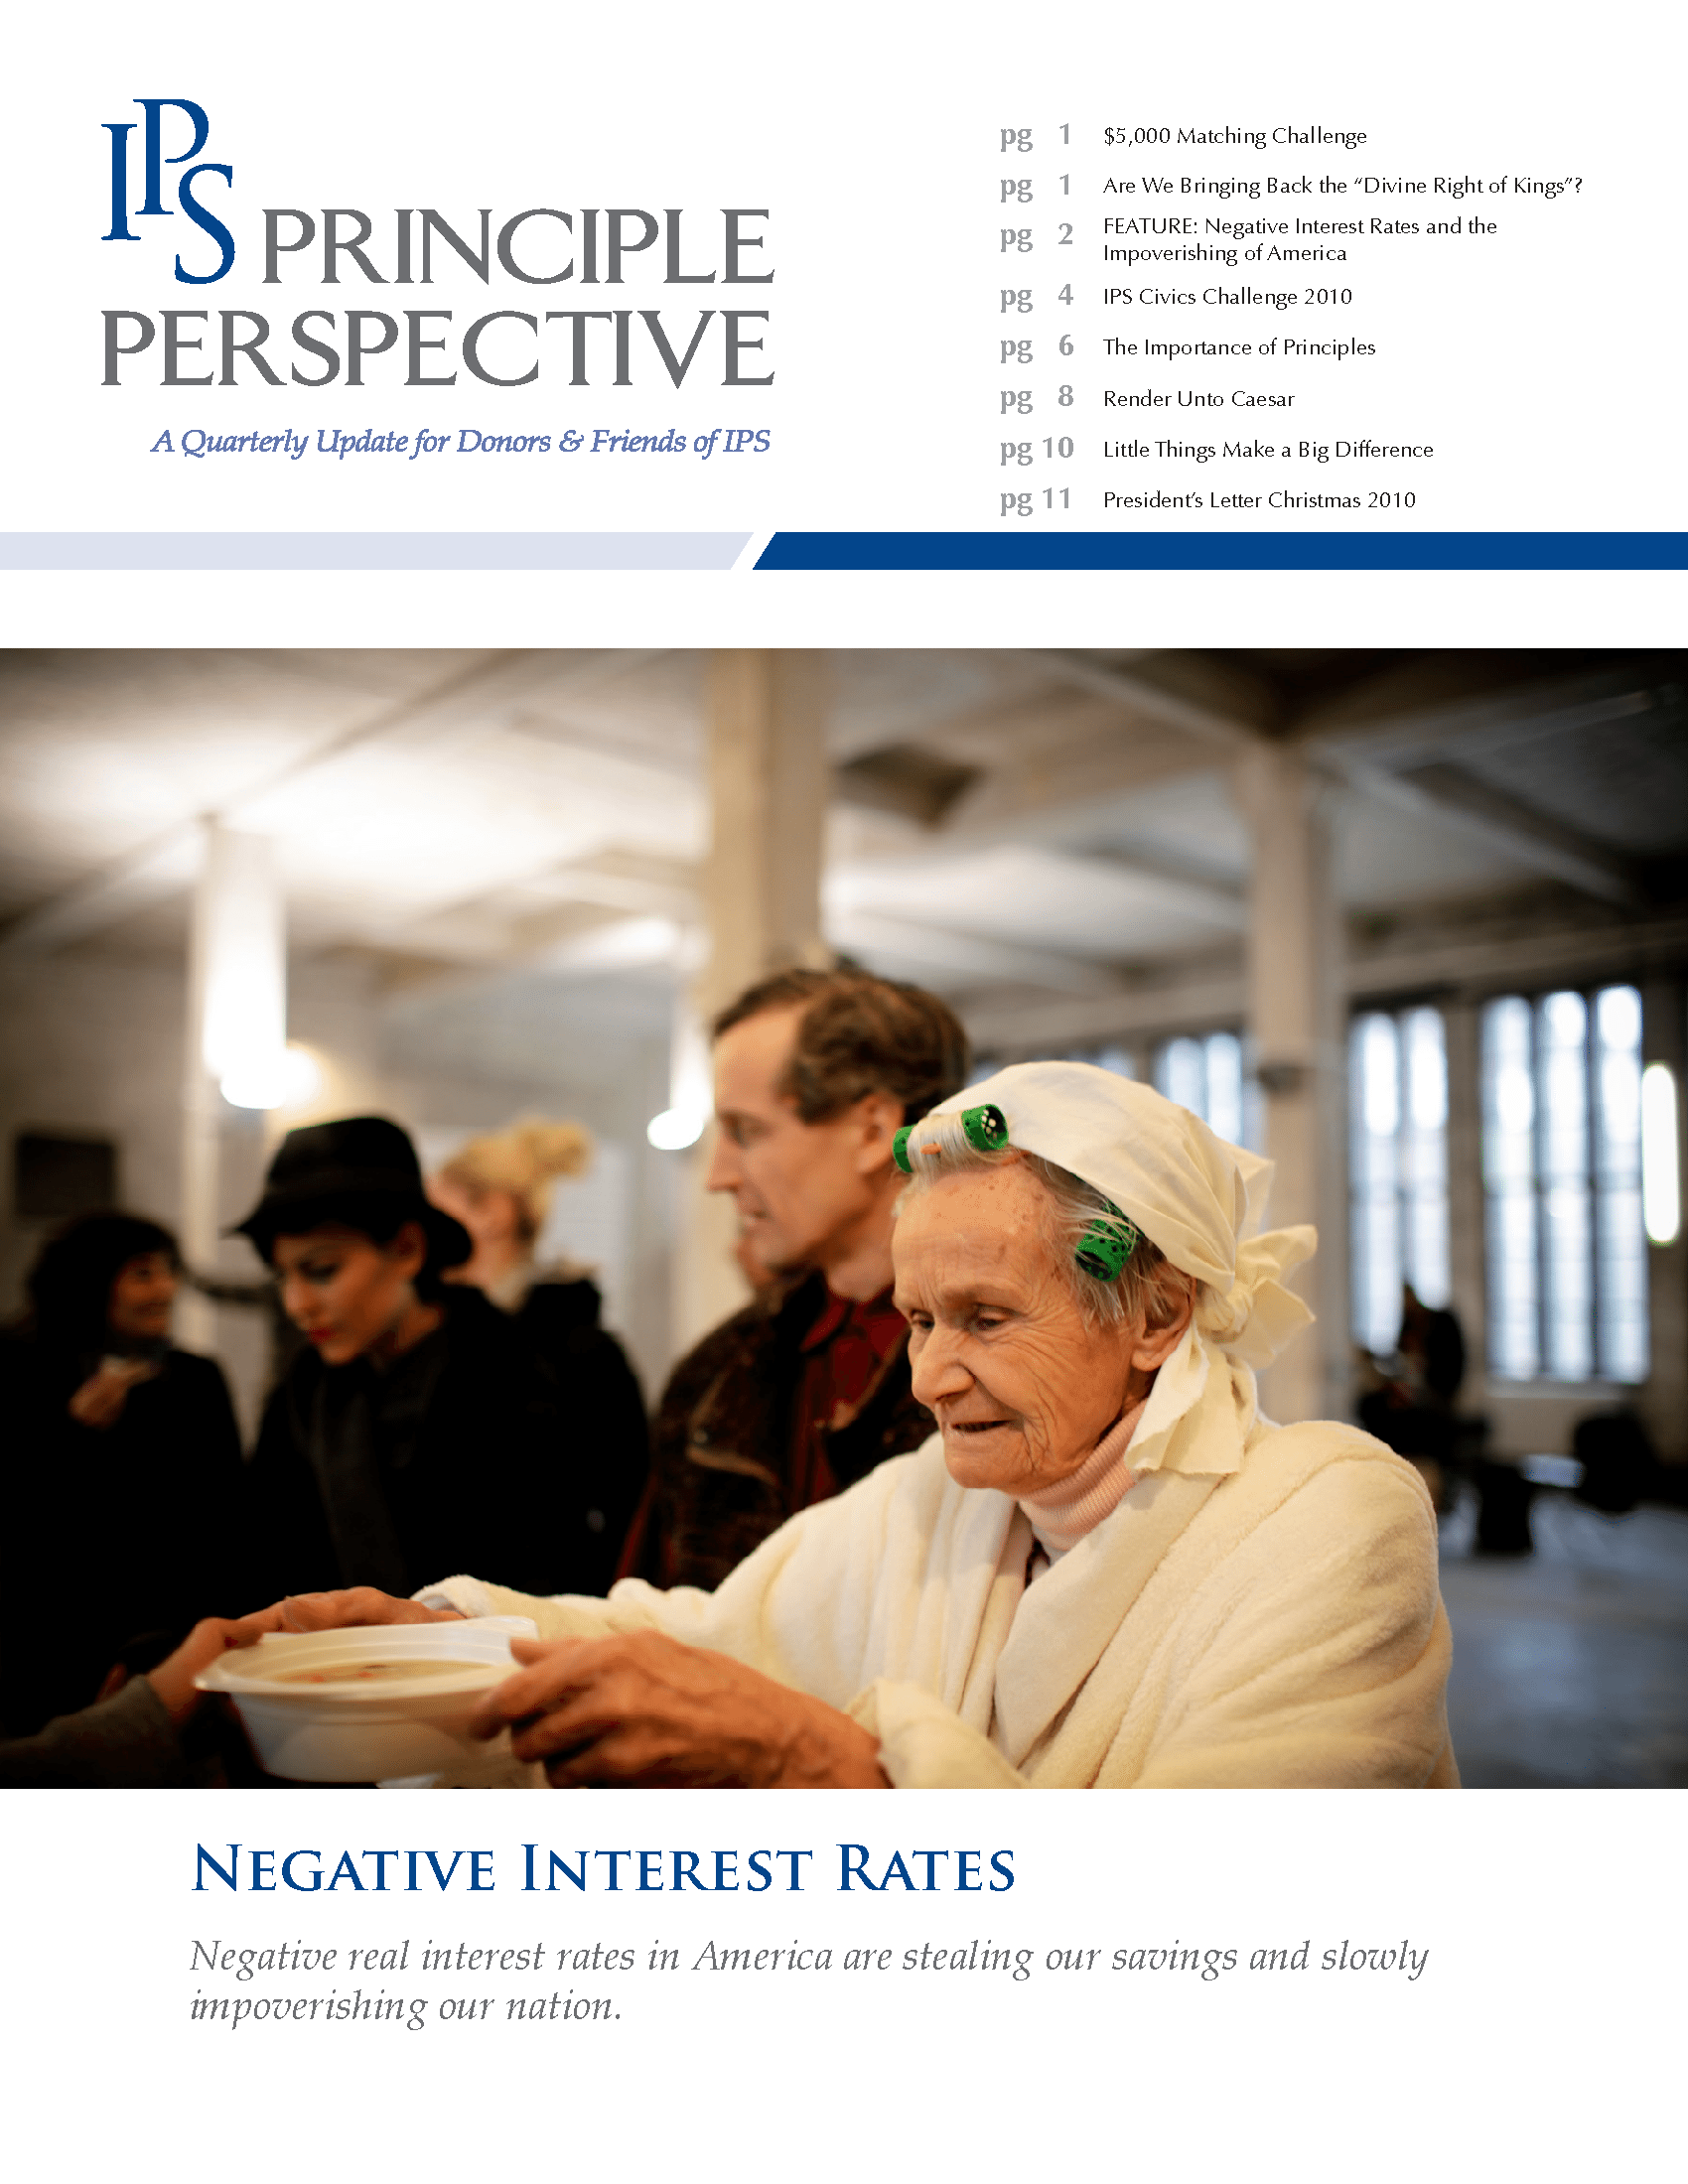 Principle Perspective - Negative Interest Rates